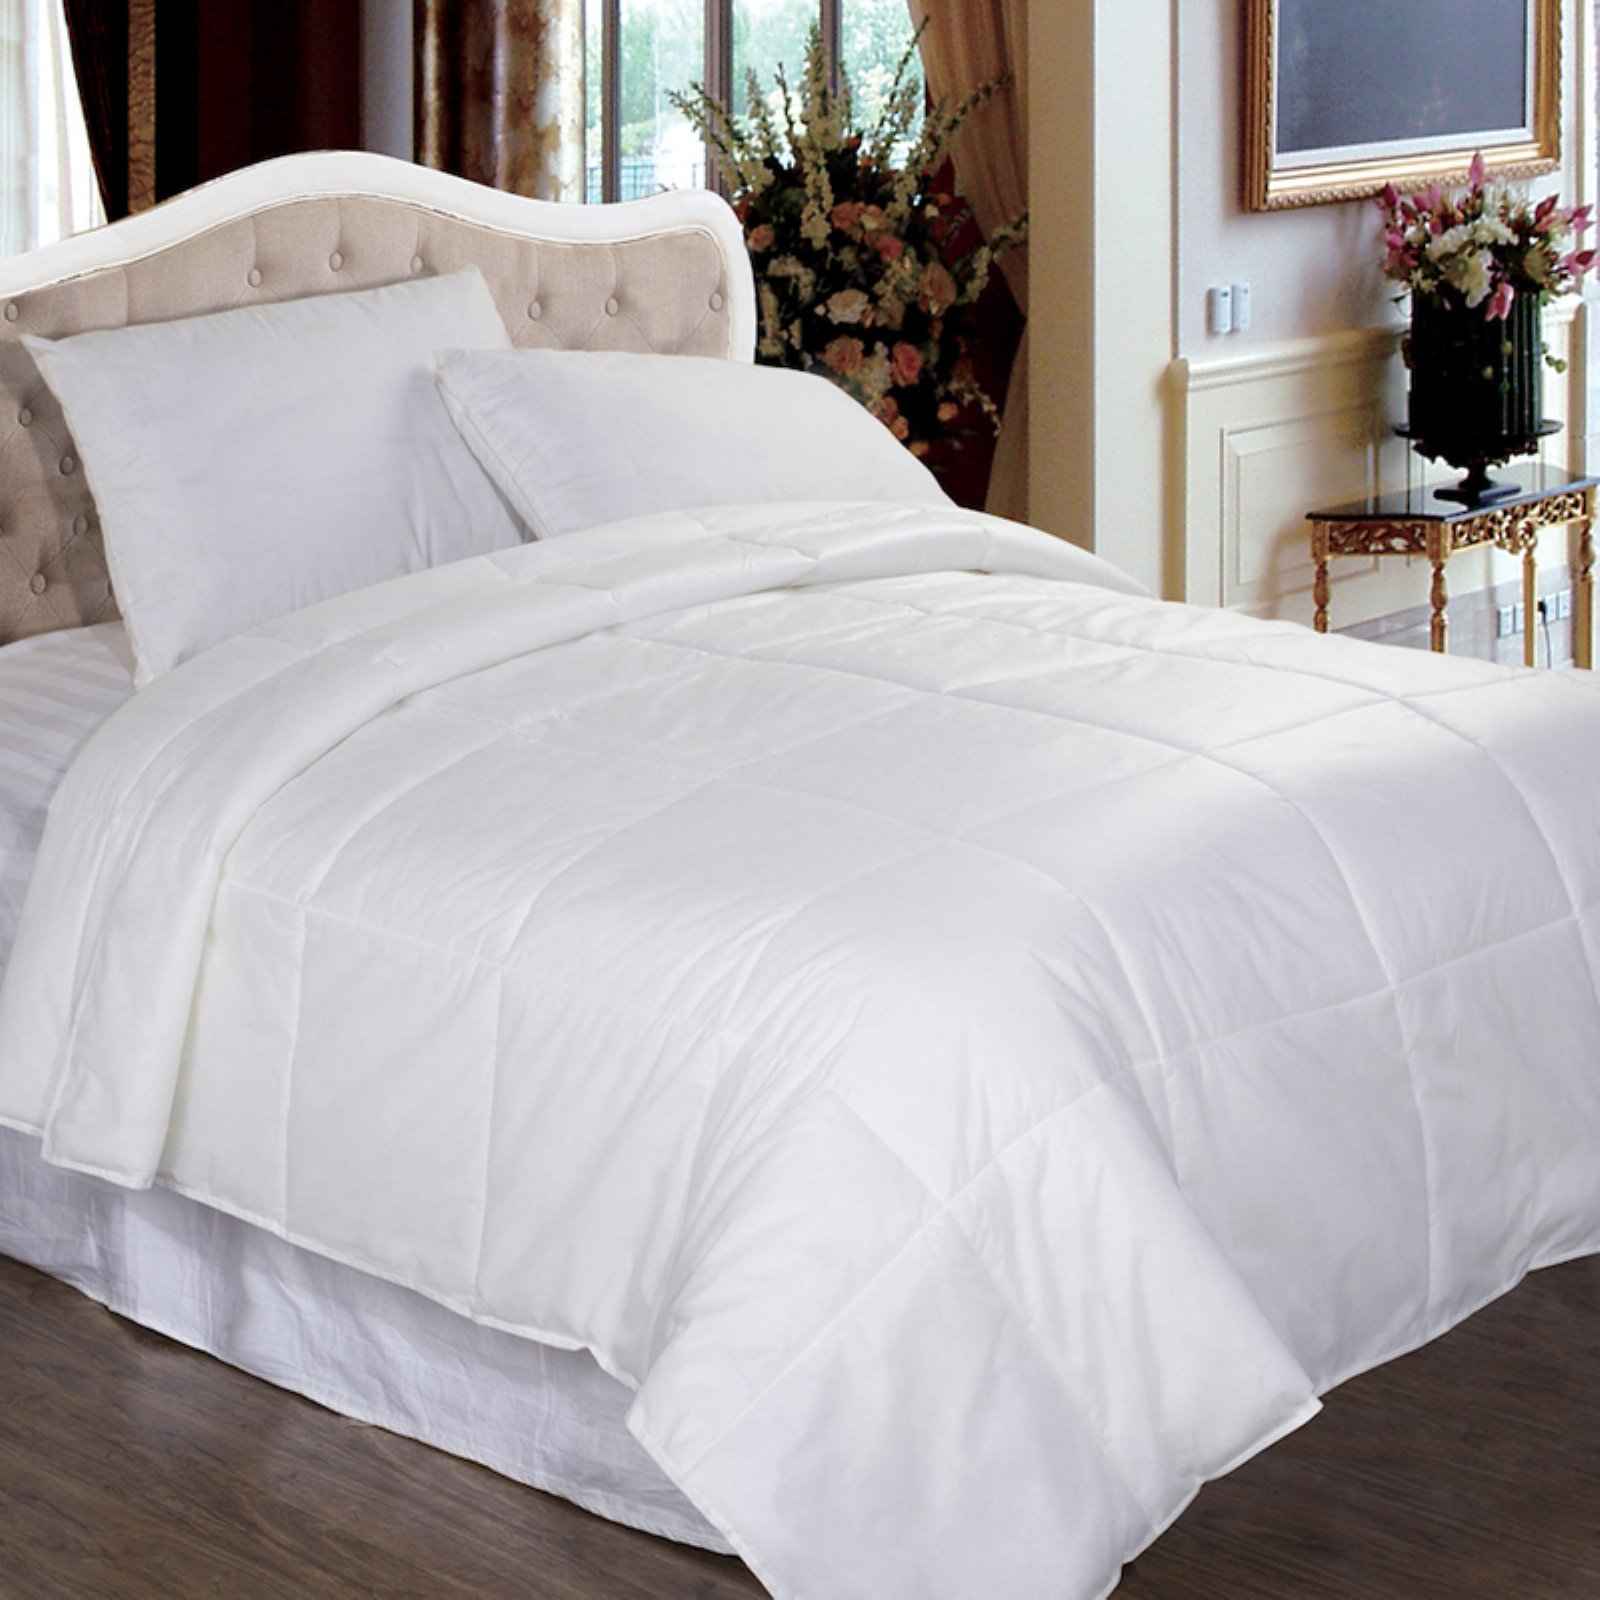 Permafresh Bed Bug and Dust Mite Control Water-Resistant Down Alternative Polypropylene Comforter